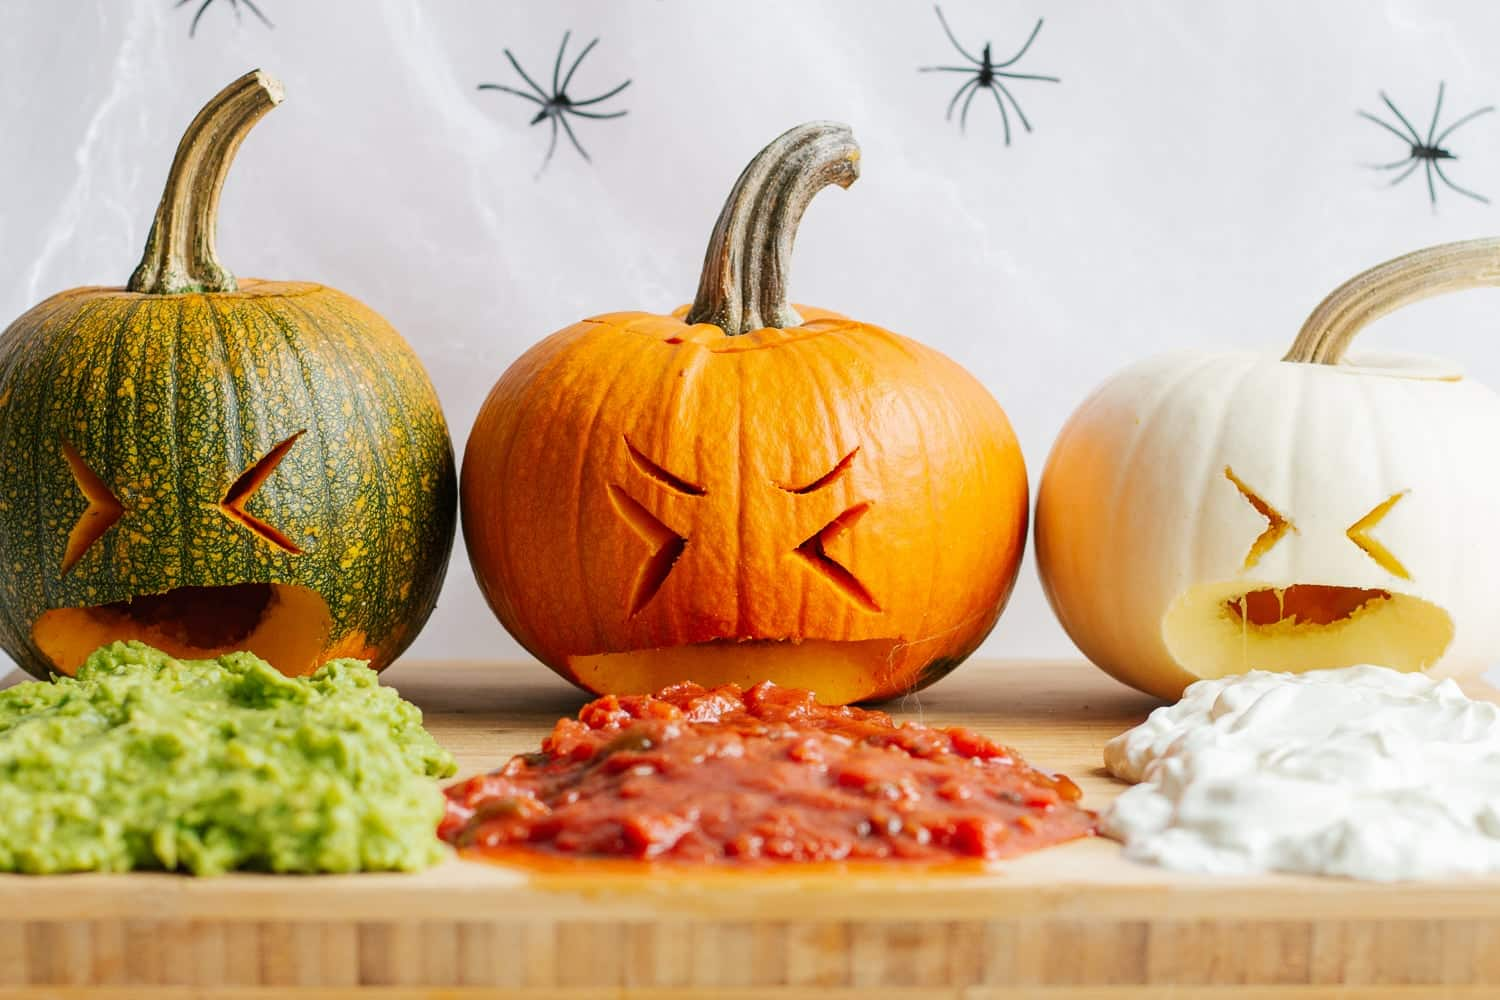 A row of three pumpkins. Each have cartoonish facial expressions and appear to be vomiting different taco sauces onto a board.